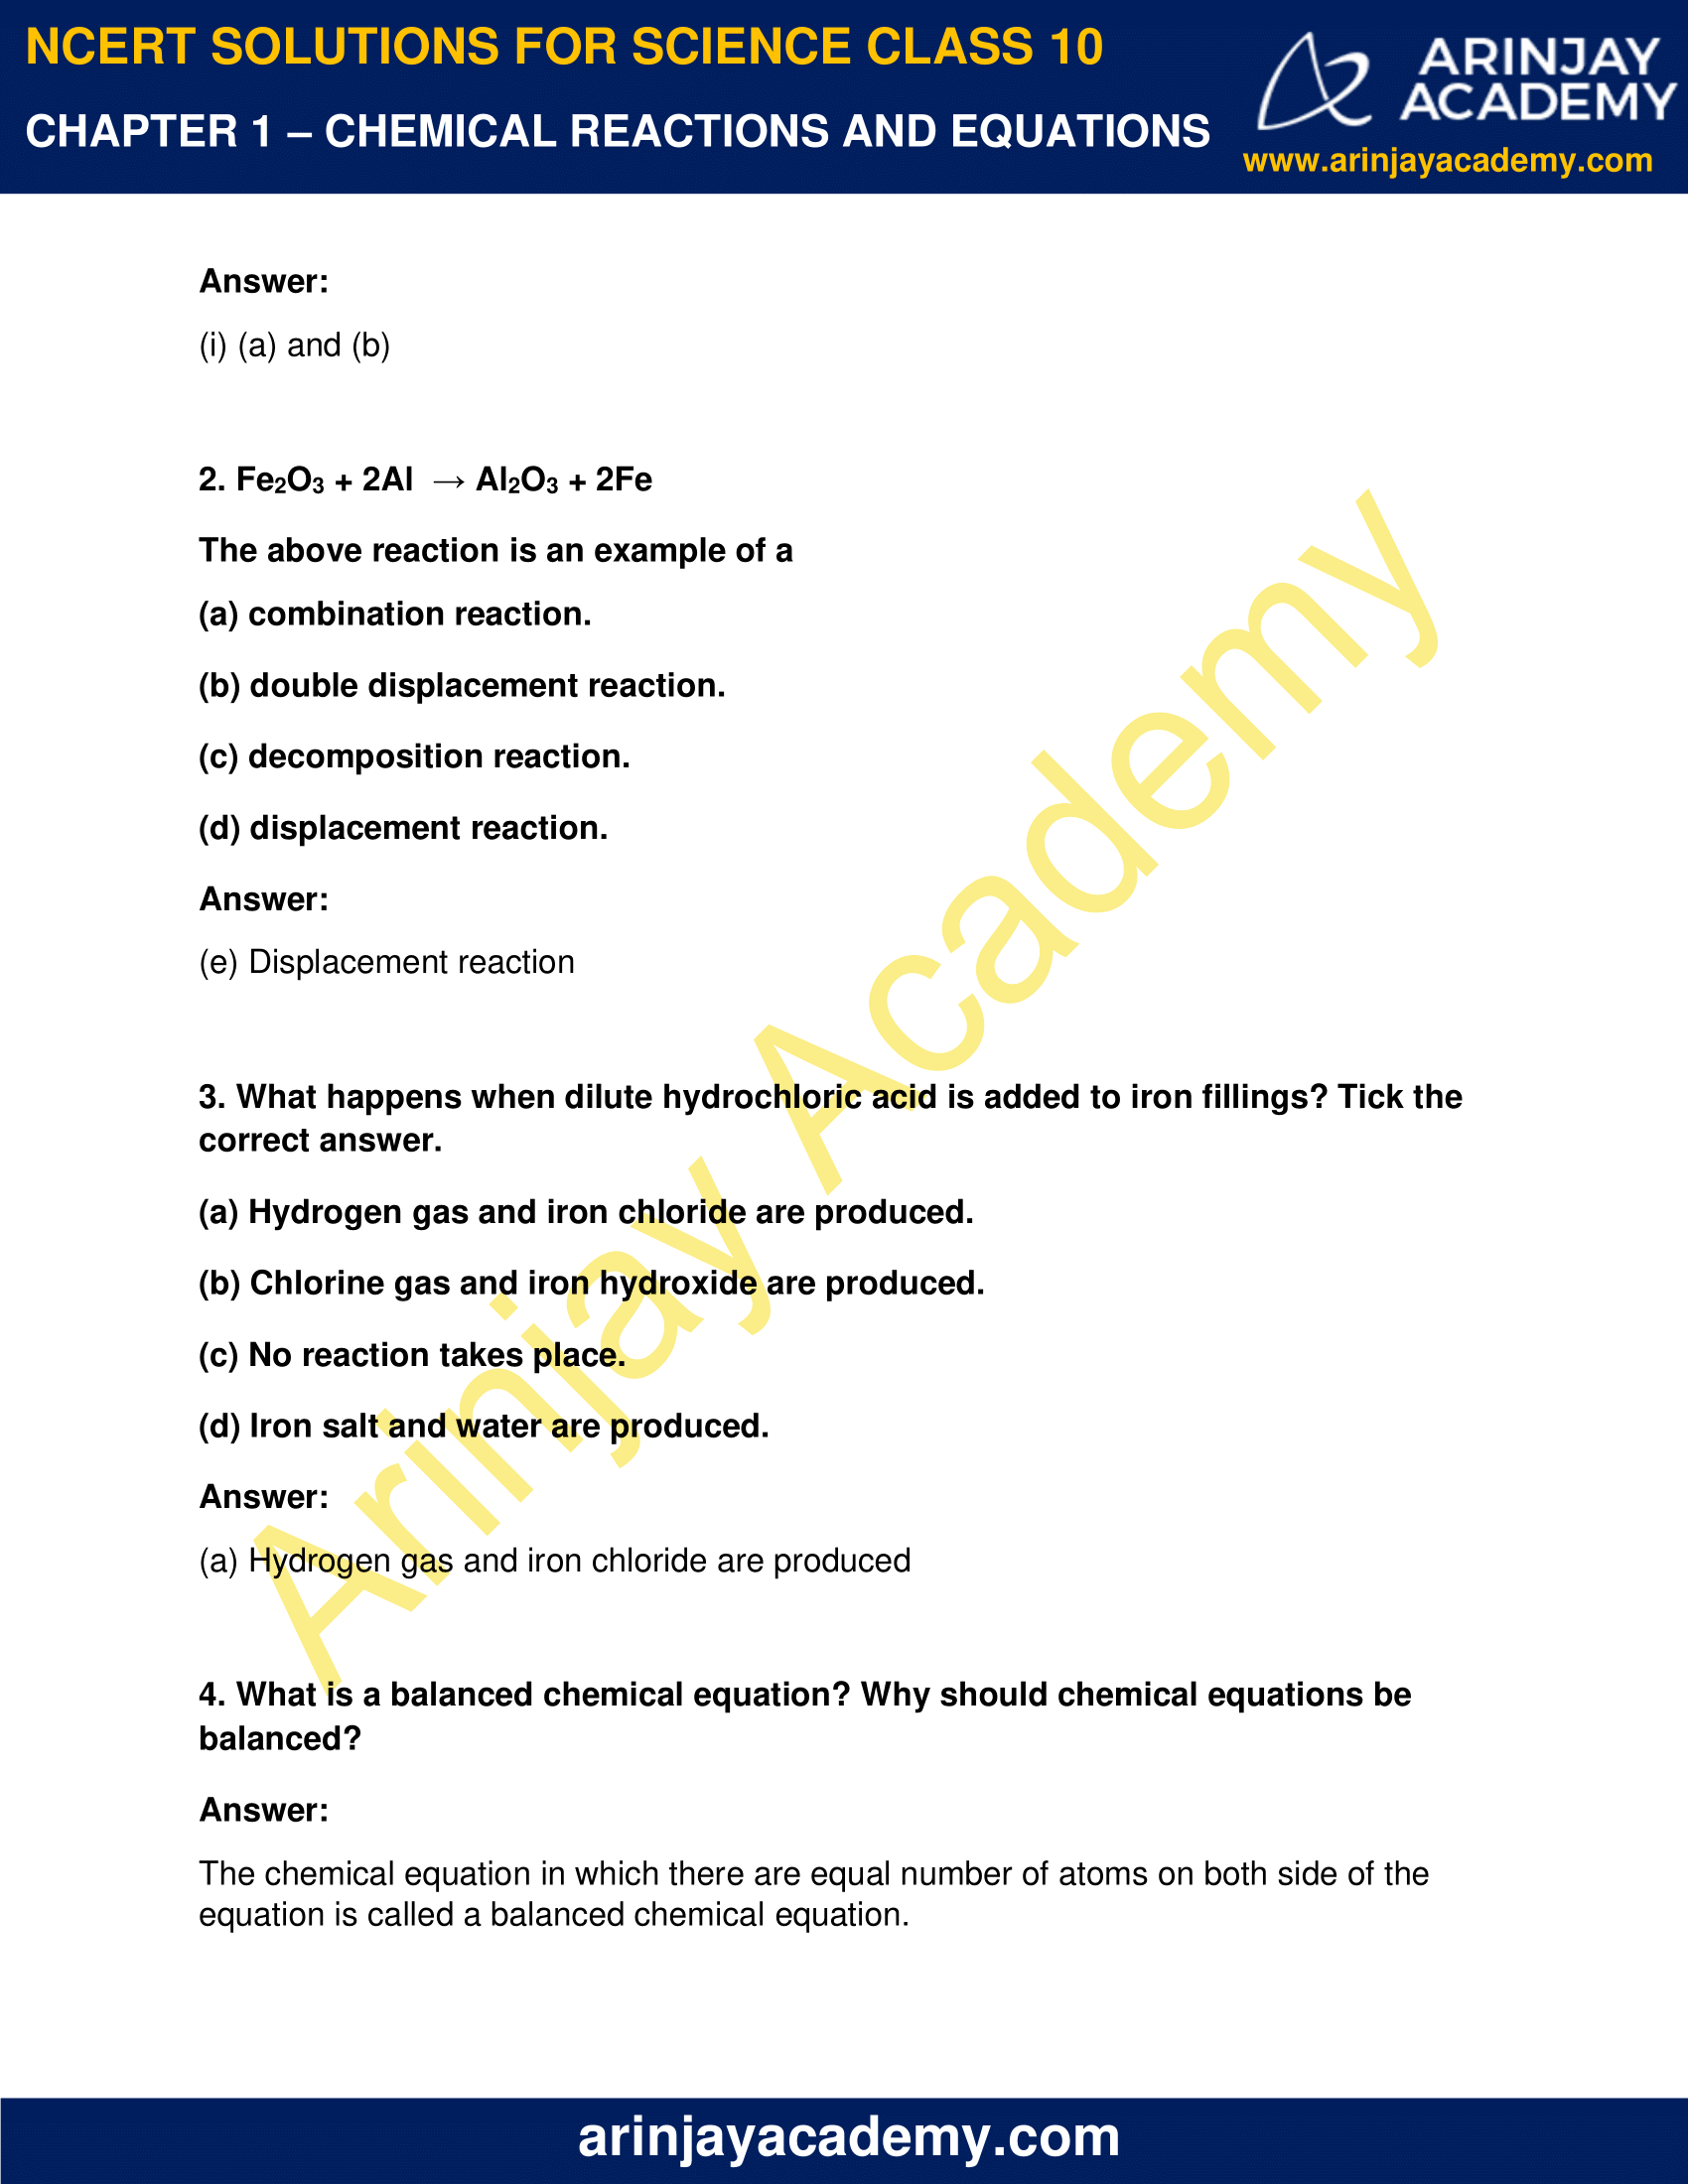 NCERT Solutions for Class 10 Science Chapter 1 image 4